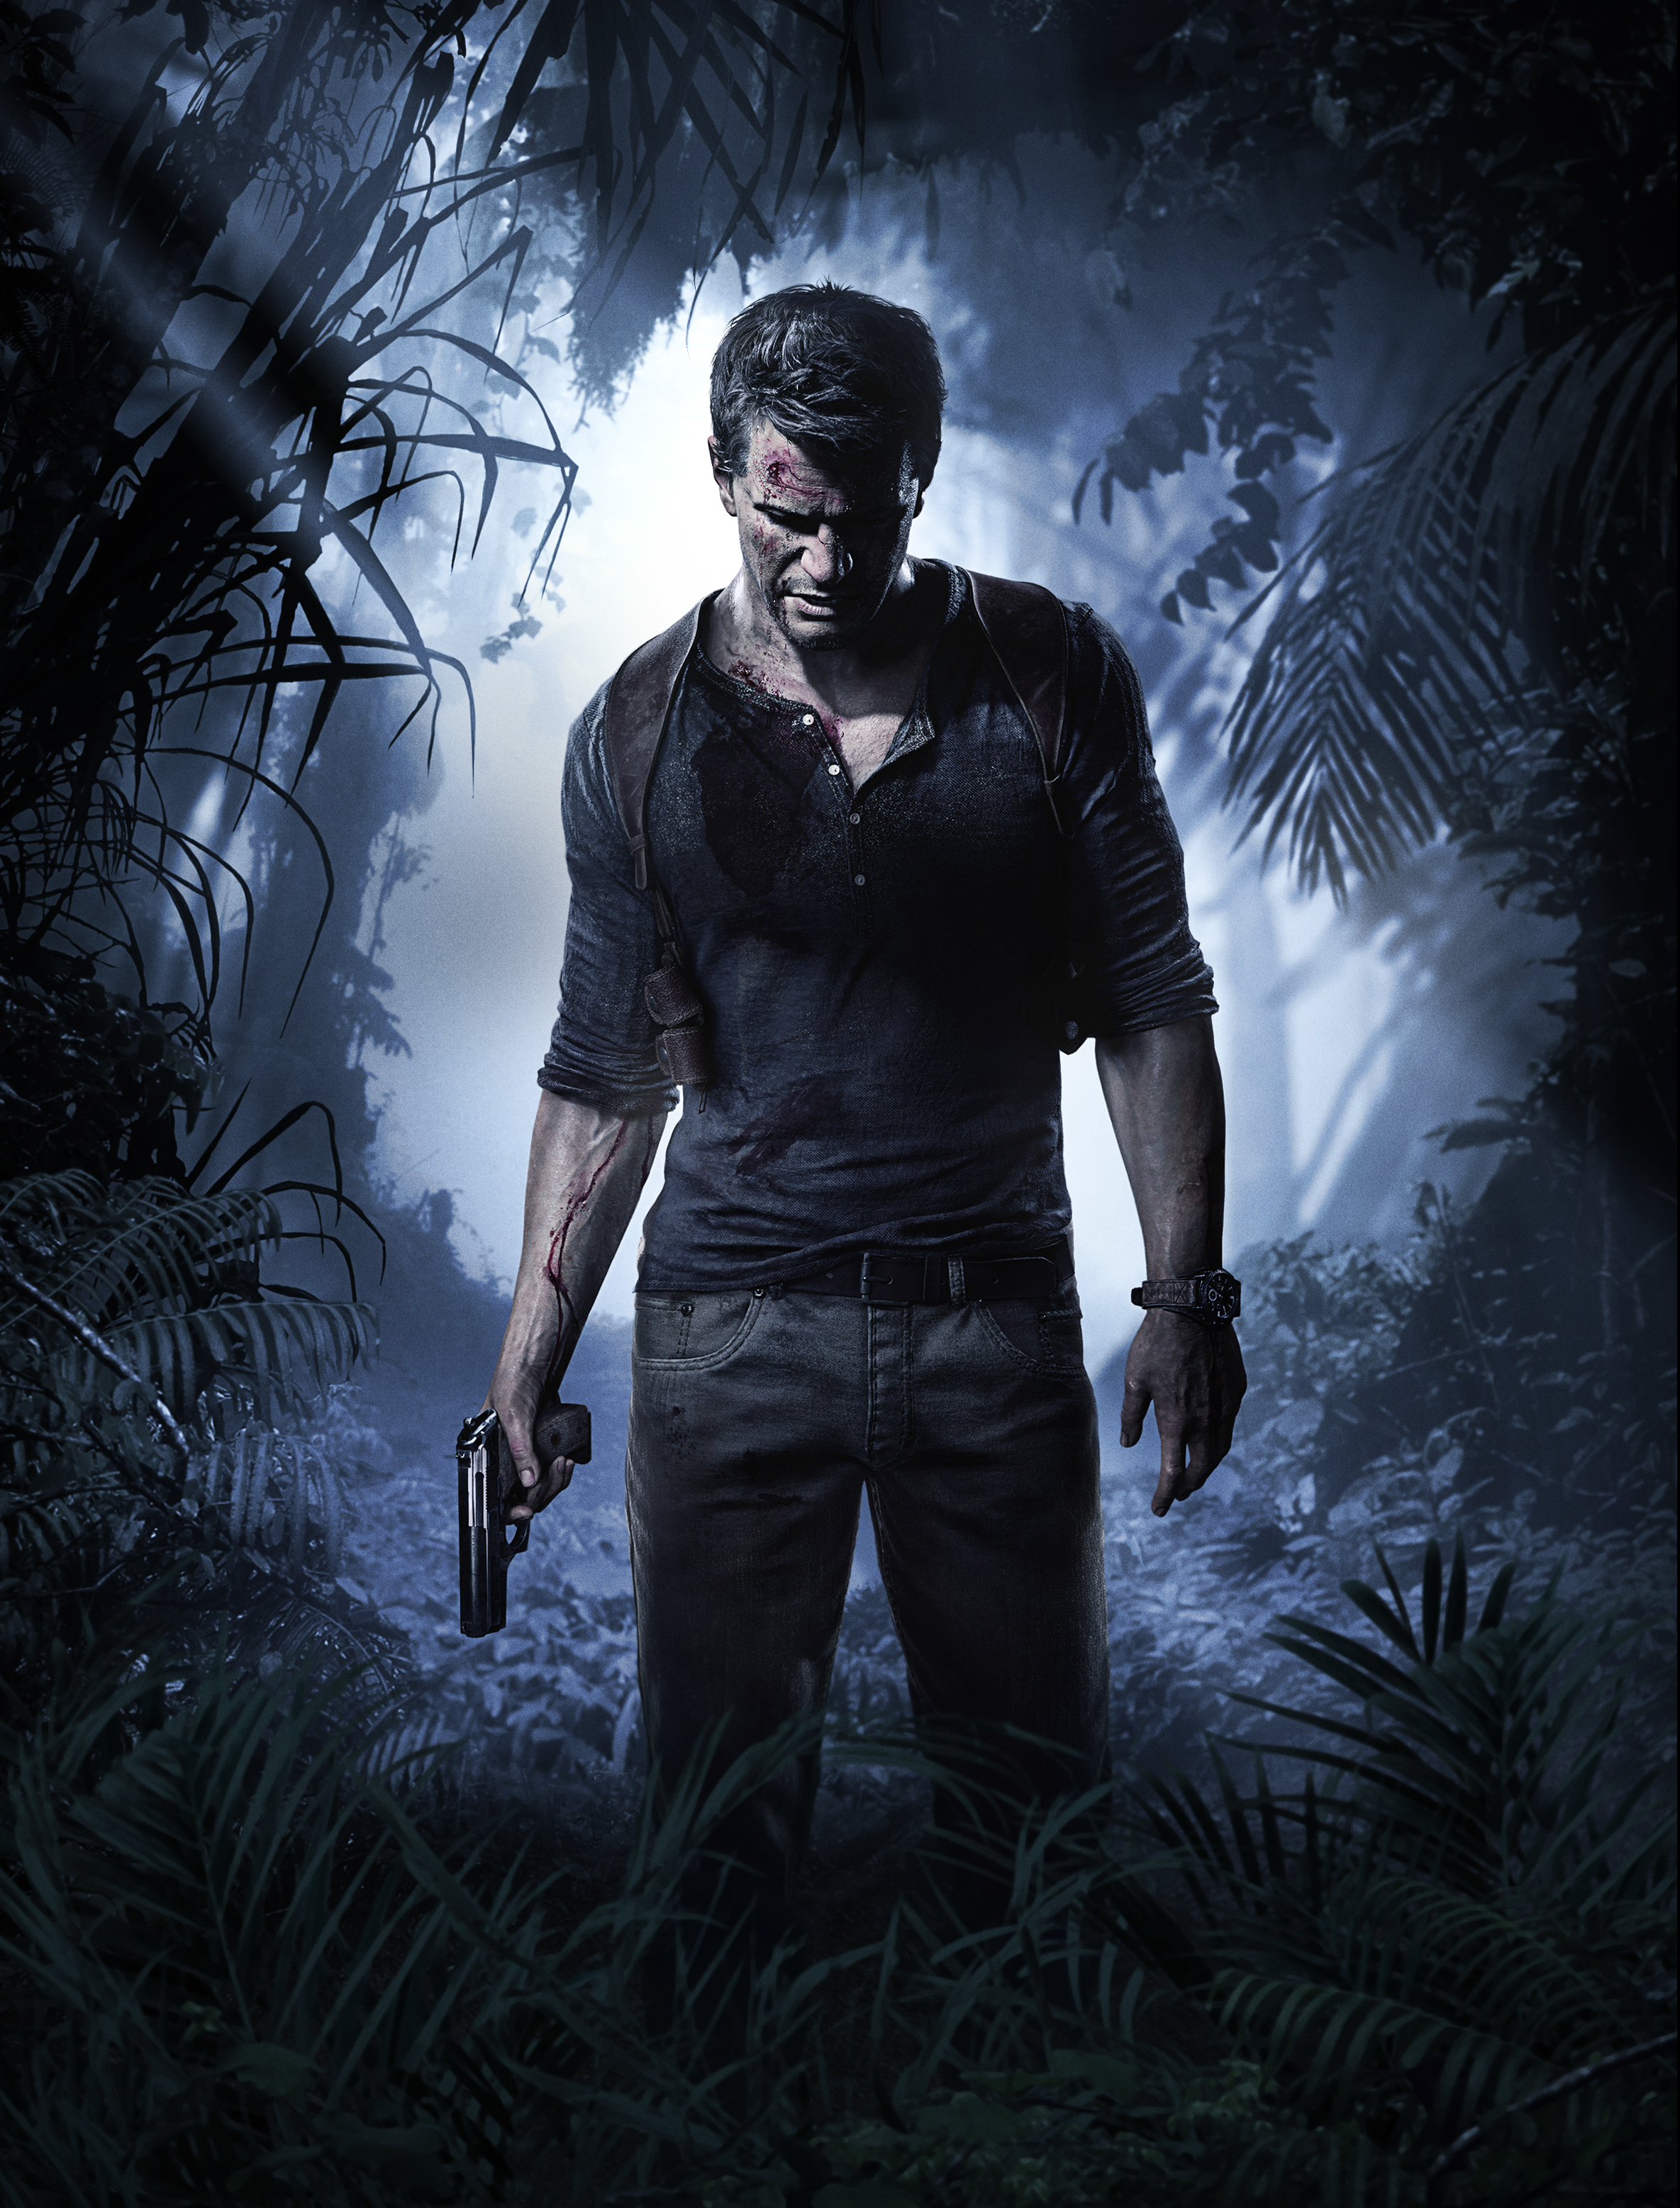 Mobile uncharted 4 a thief s end wallpaper full hd pictures - Uncharted 4 wallpaper ps4 ...